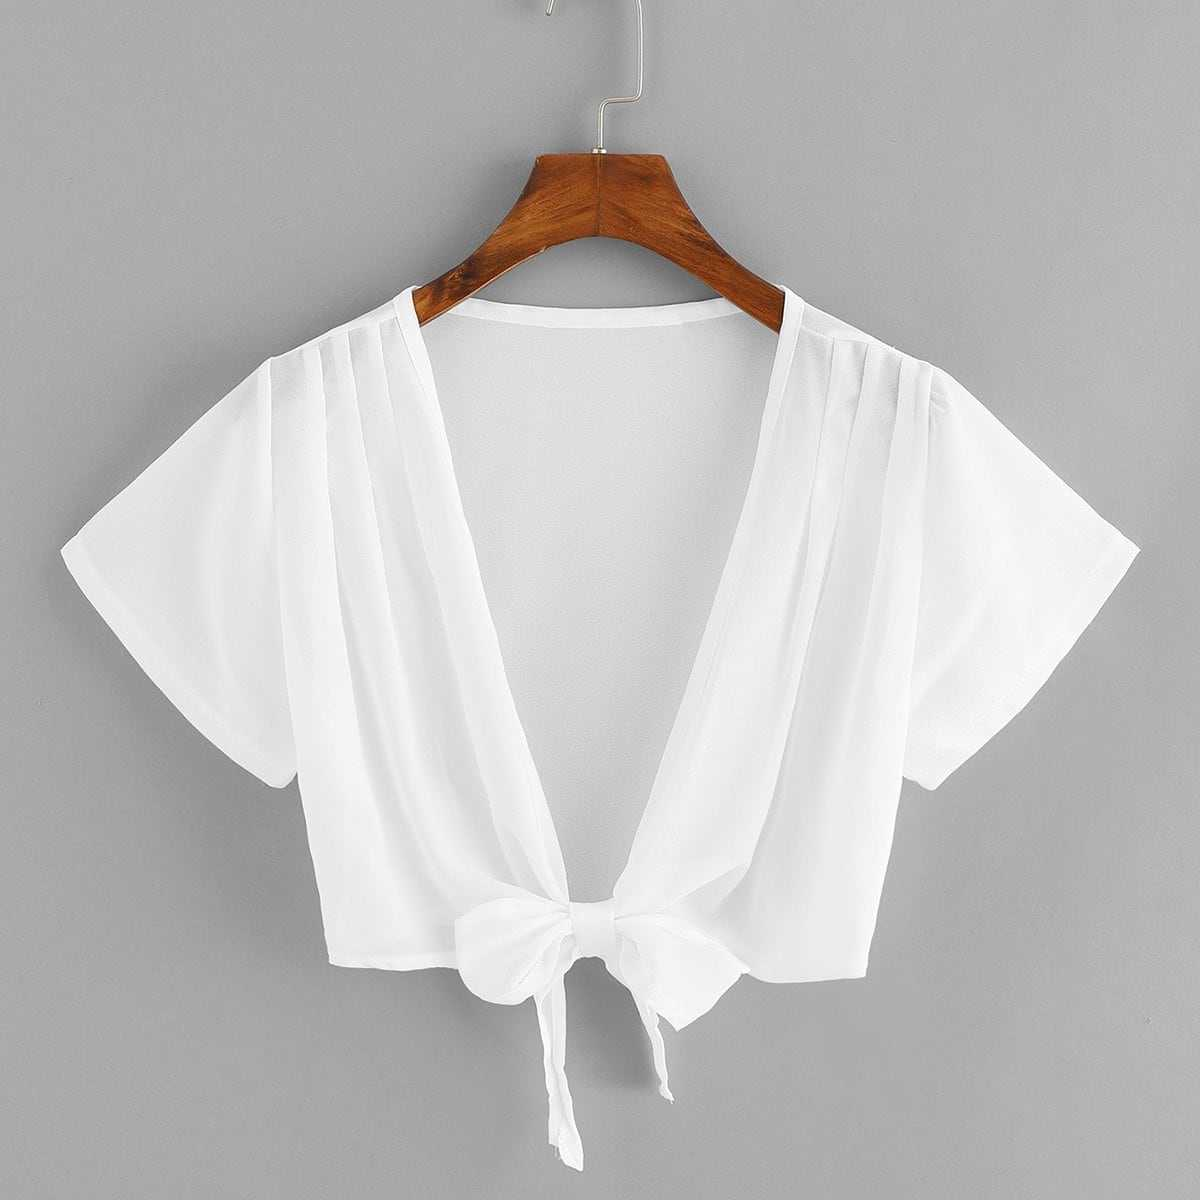 Deep V Neck Knot Blouse in White by ROMWE on GOOFASH